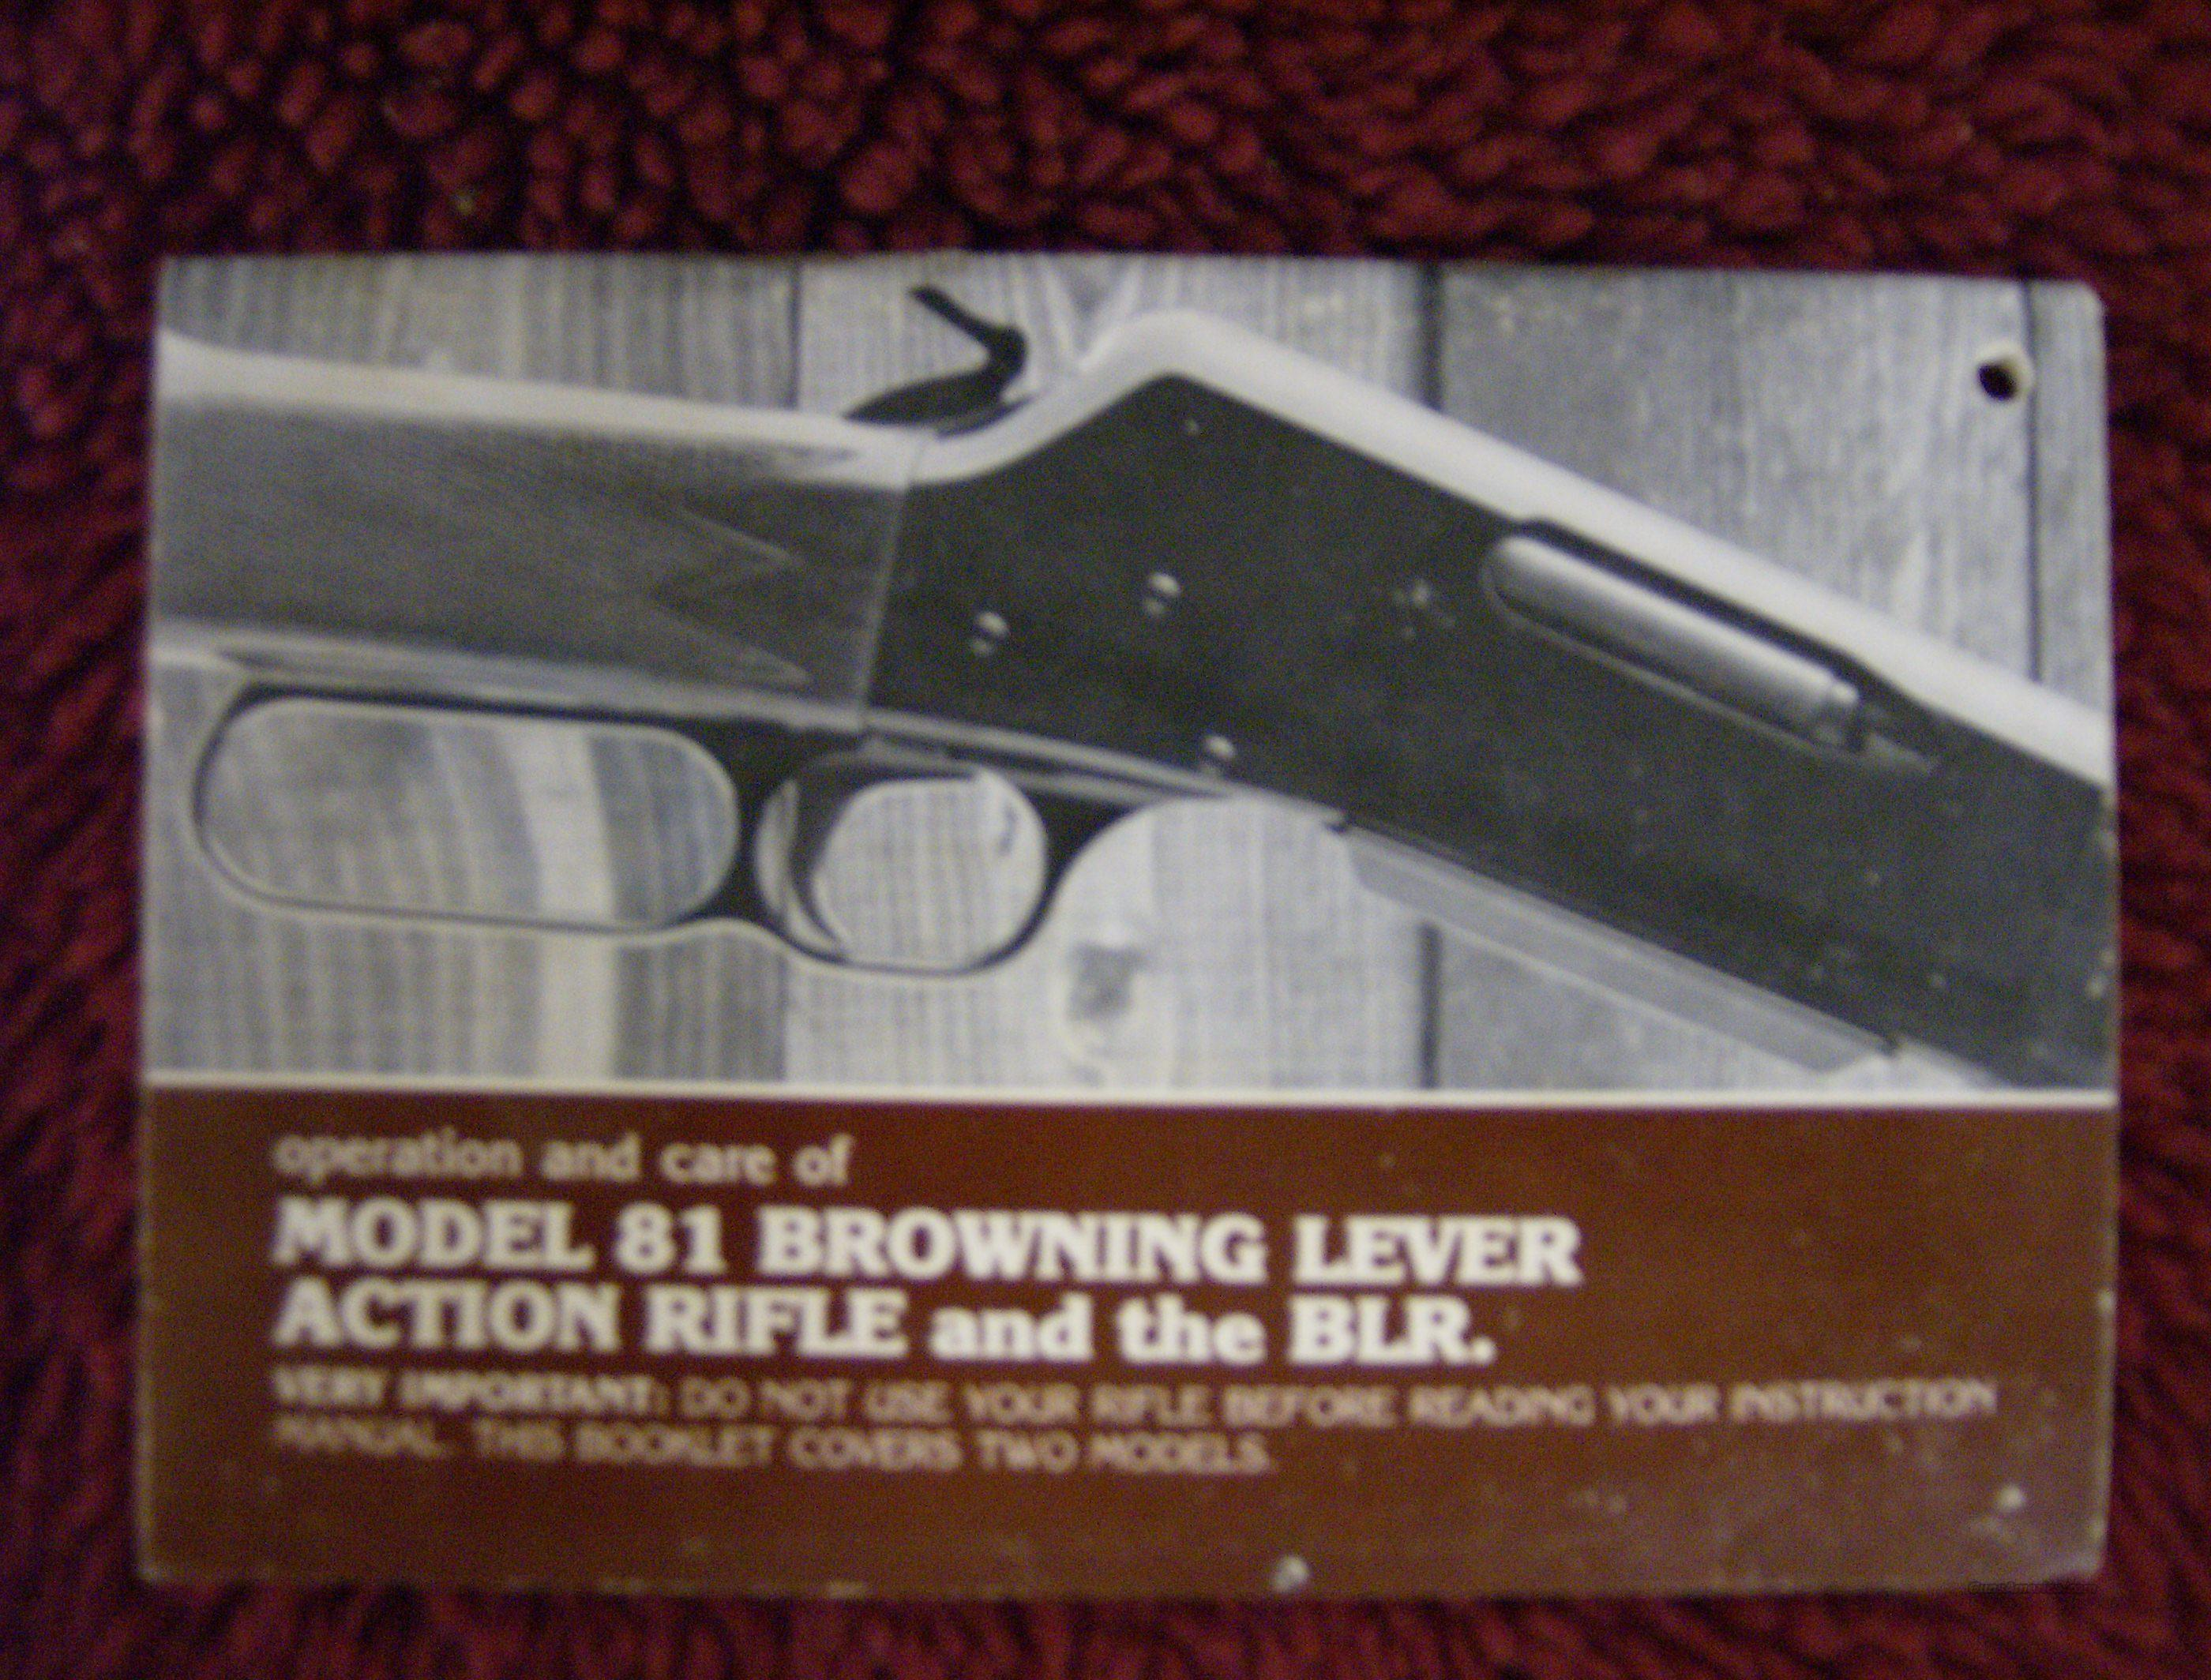 browning owners manual for 81 lever action rifl for sale rh gunsamerica com